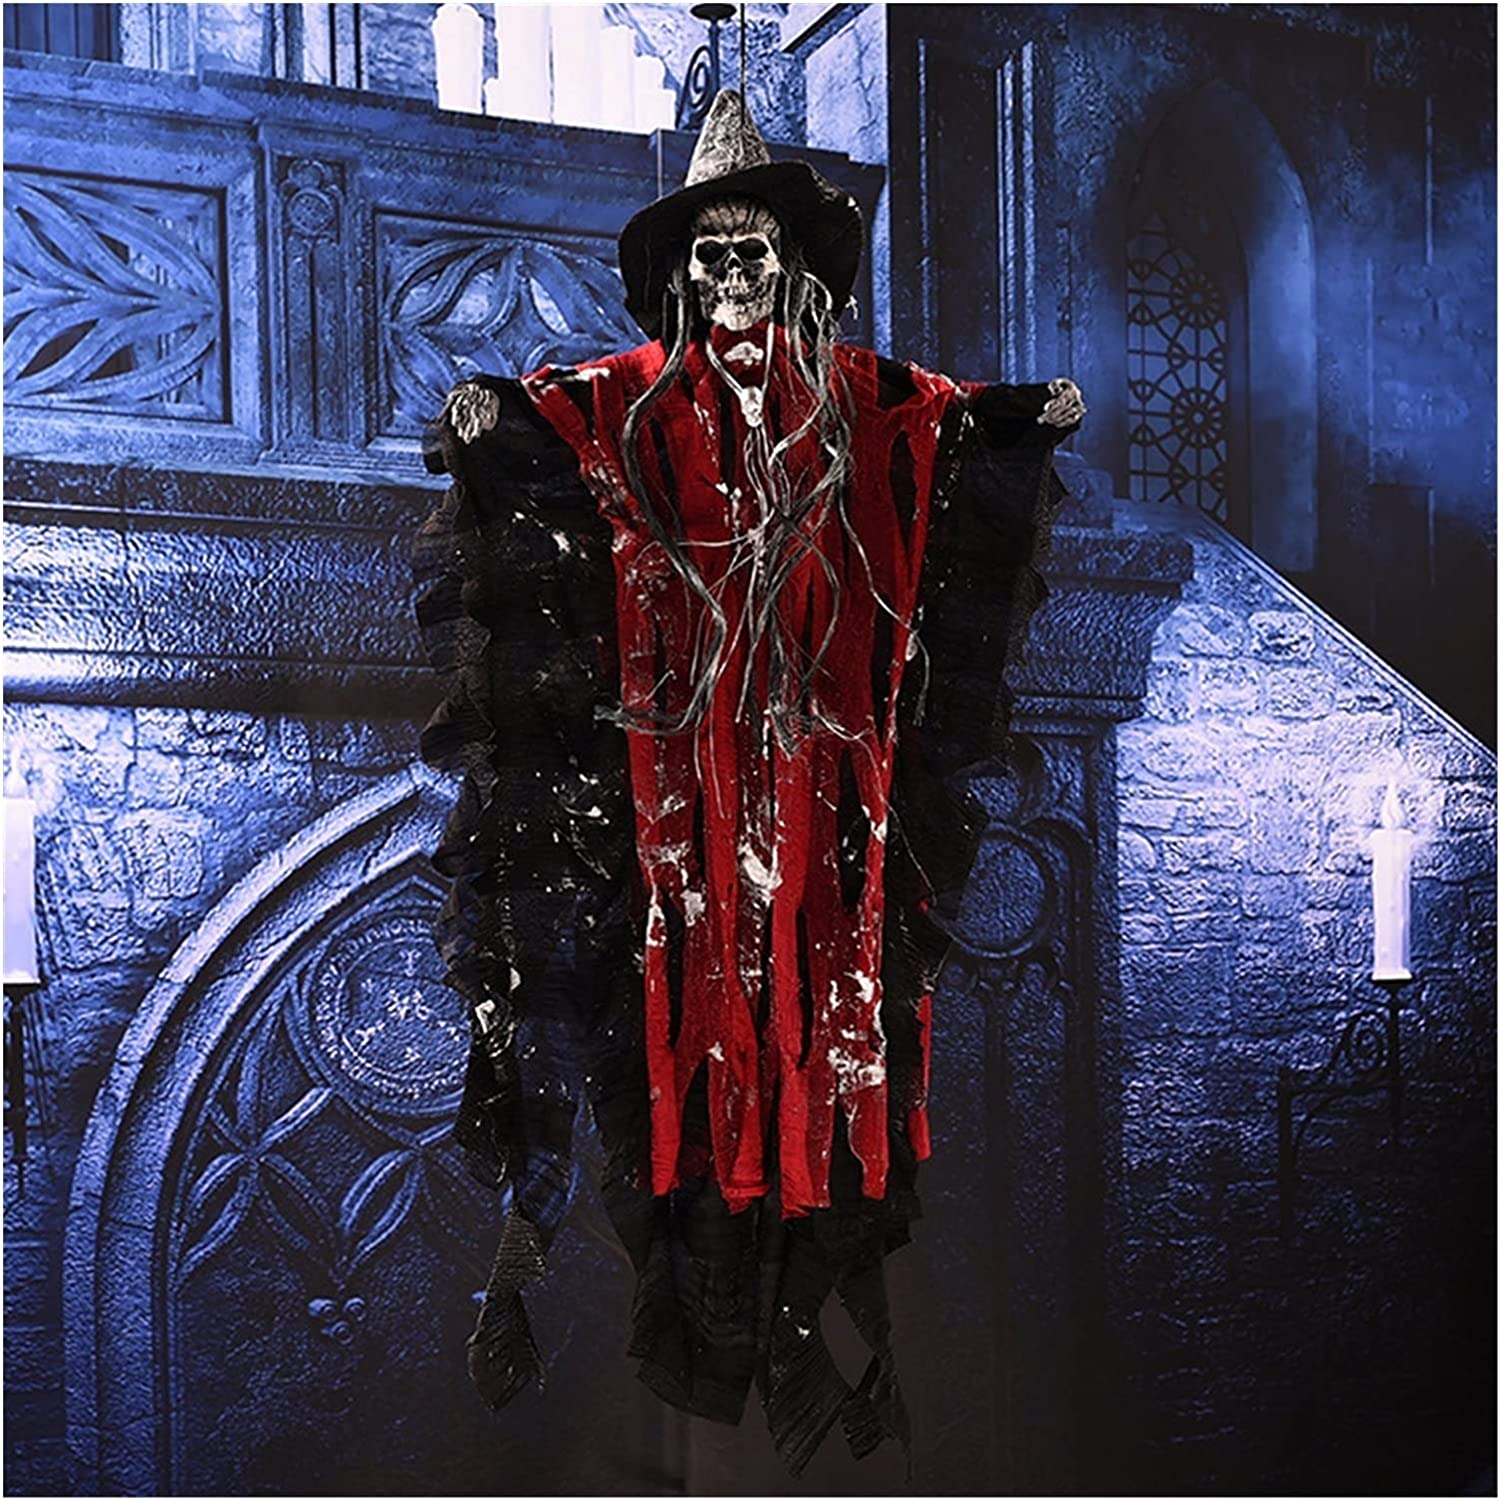 Haunted House Party Decor Max Max 55% OFF 50% OFF Props Hanging Halloween G Decorations